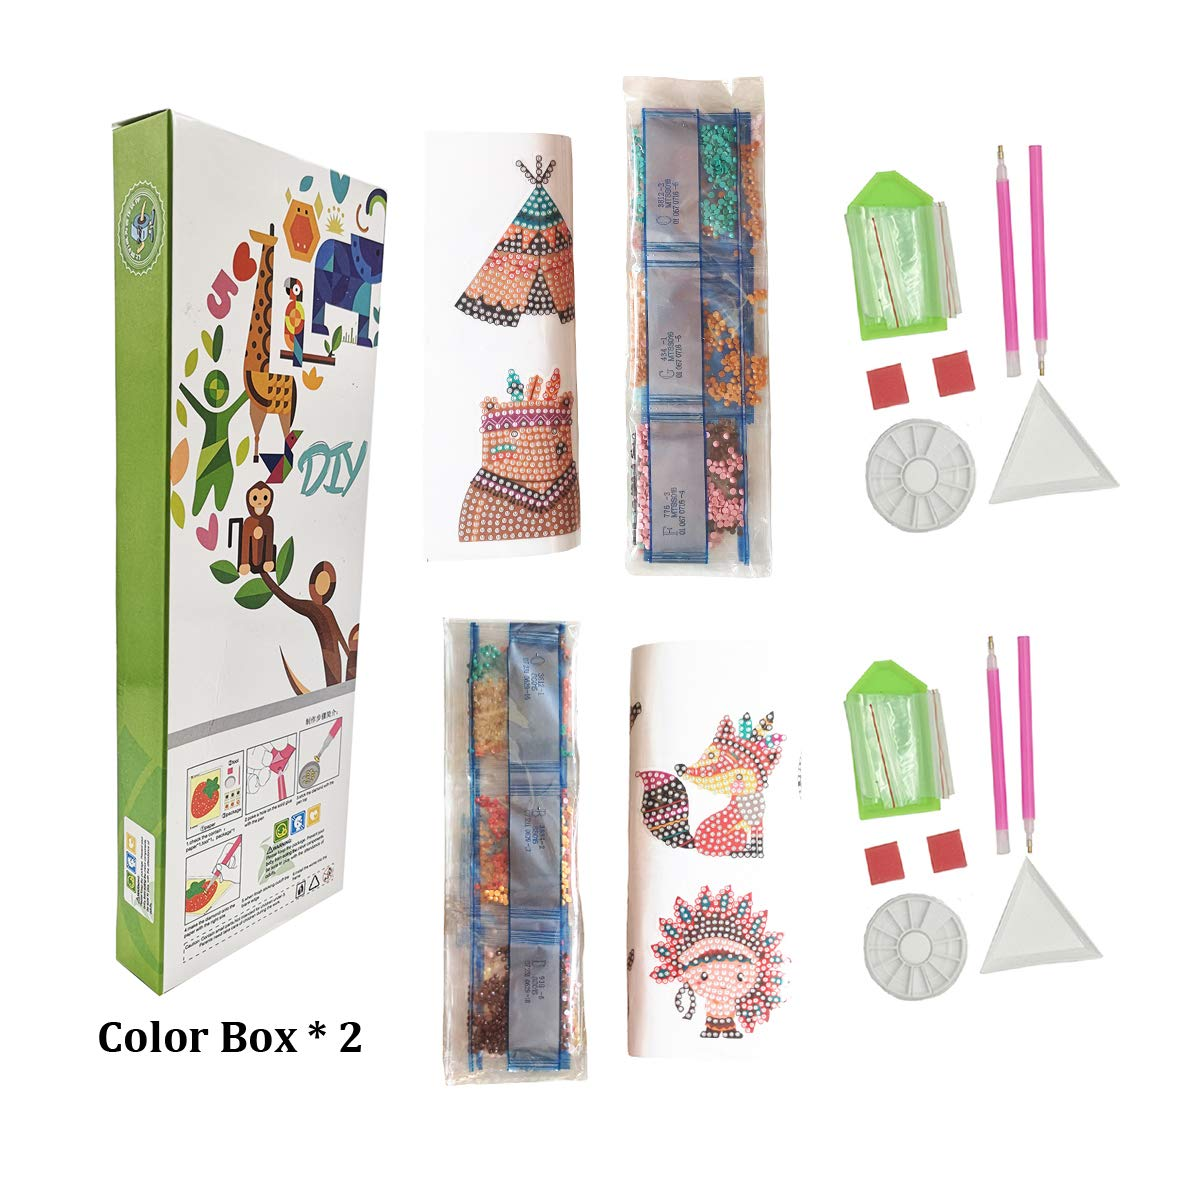 HOMERDAIRY Diamond Painting Stickers Kits for Kids and Adult Beginners Diamond Mosaic Paint by Numbers Mixed Kits